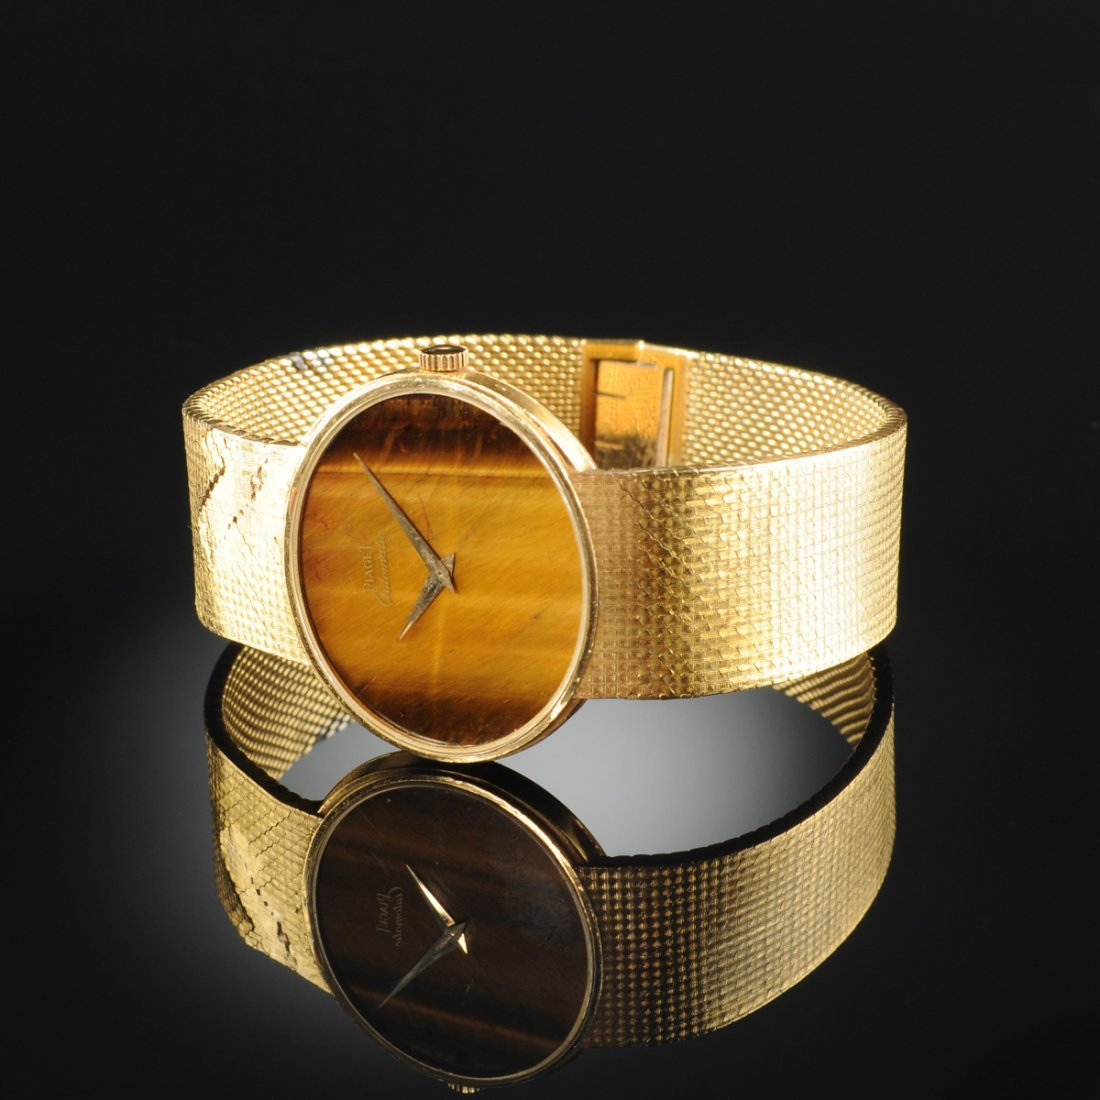 AN 18K YELLOW GOLD PIAGET GENT'S WATCH,